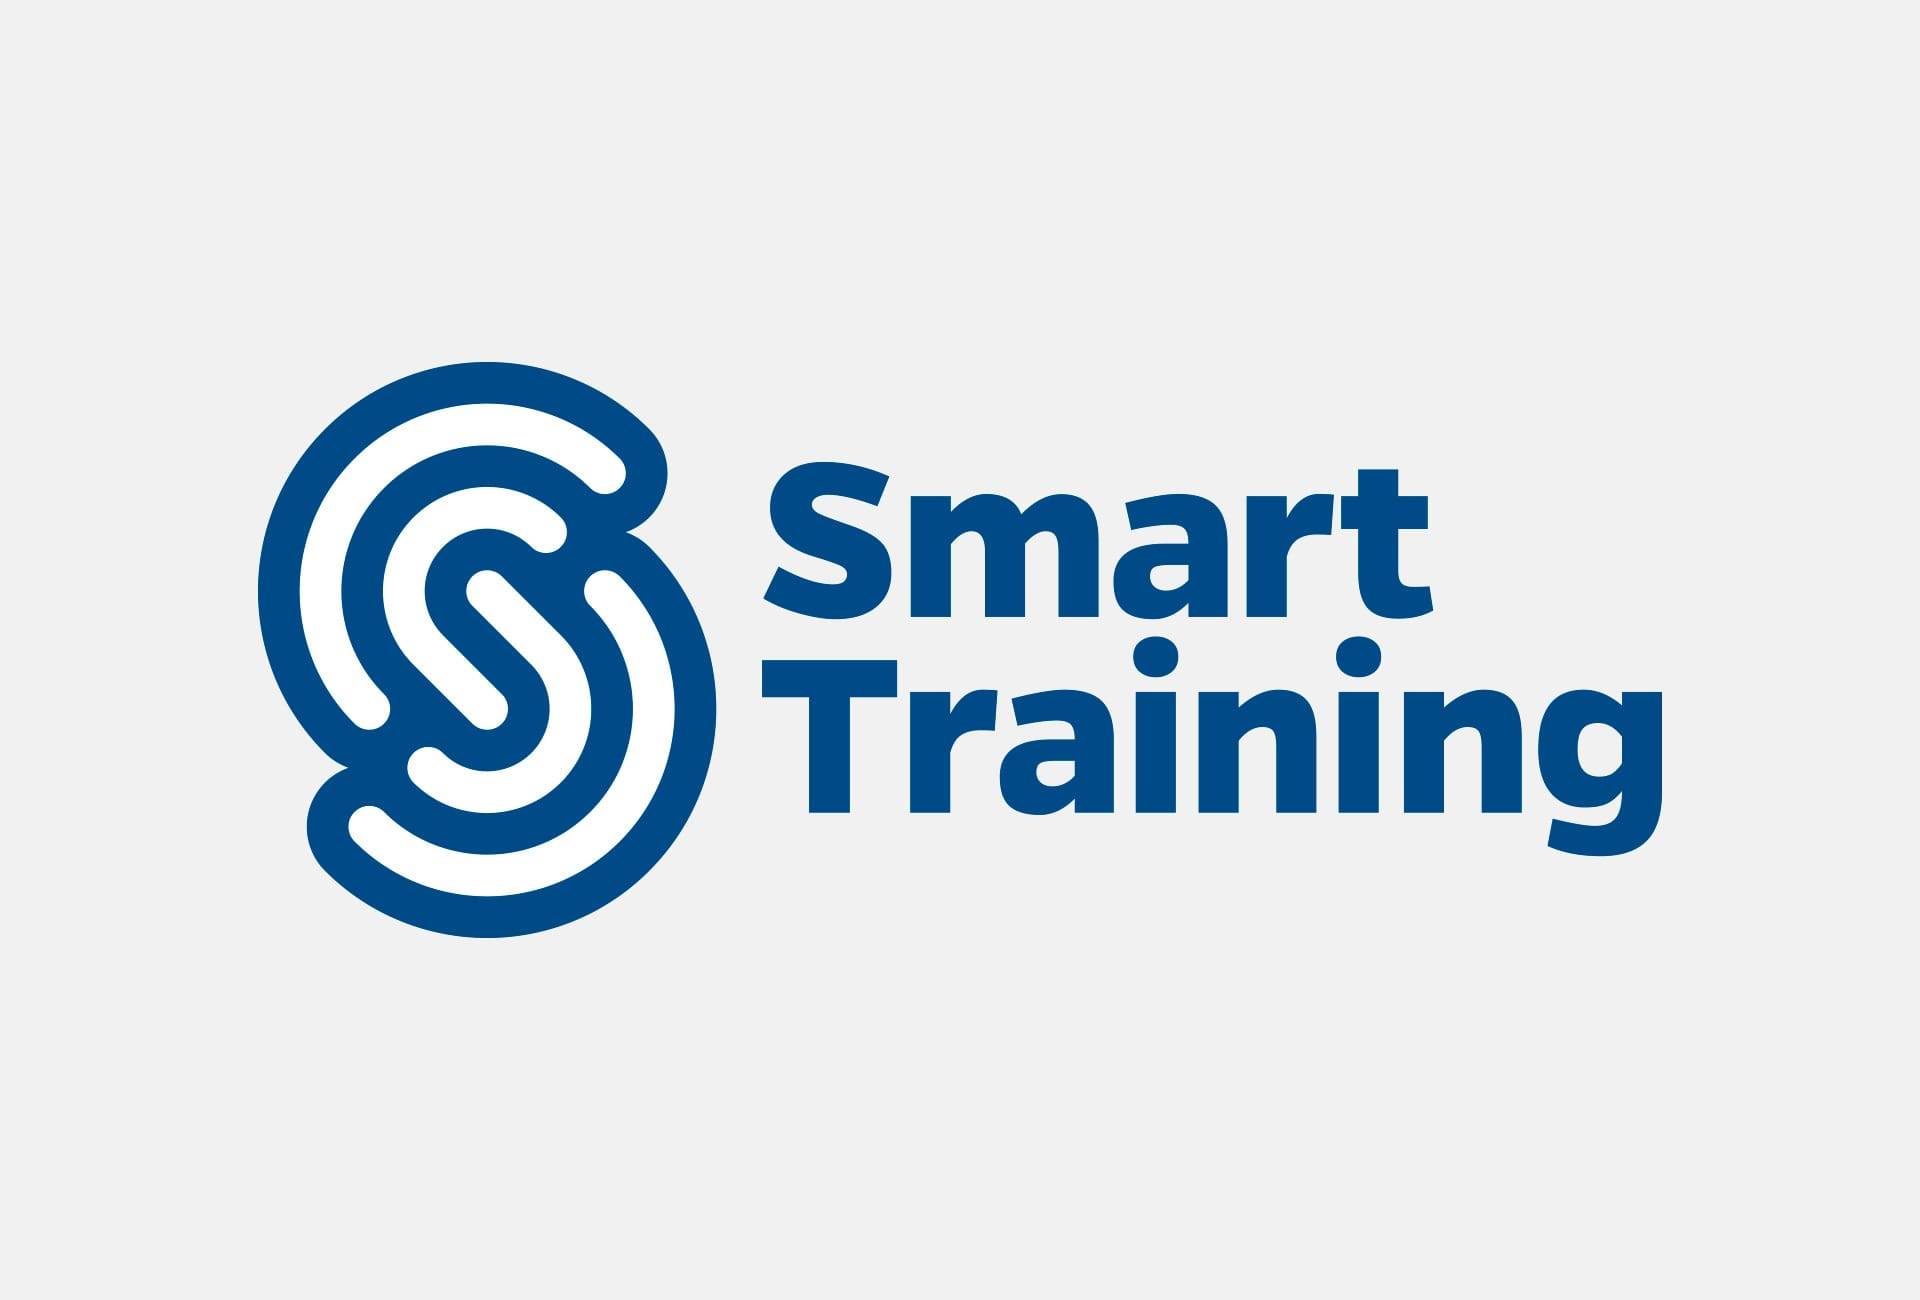 Smart Training: Branding & Website - Branding